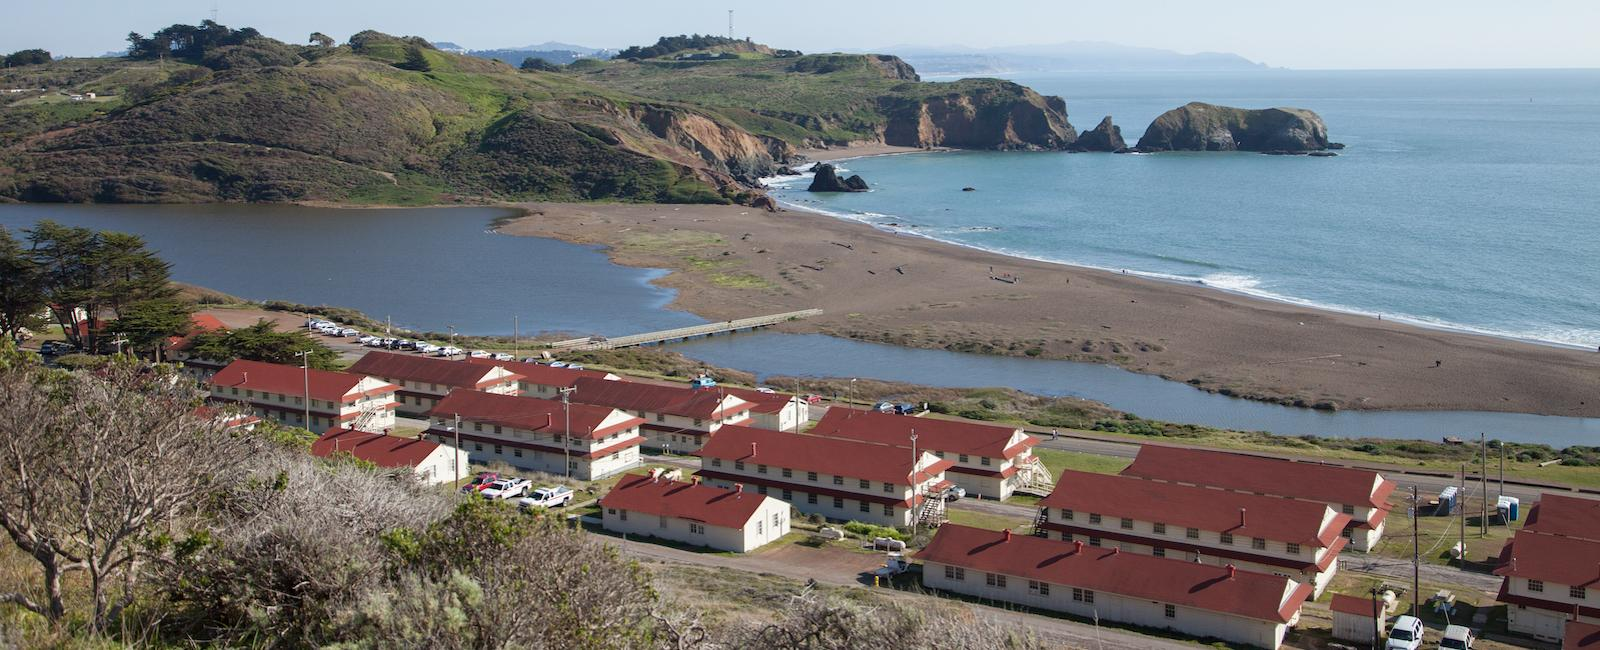 Fort Cronkhite and Rodeo Beach